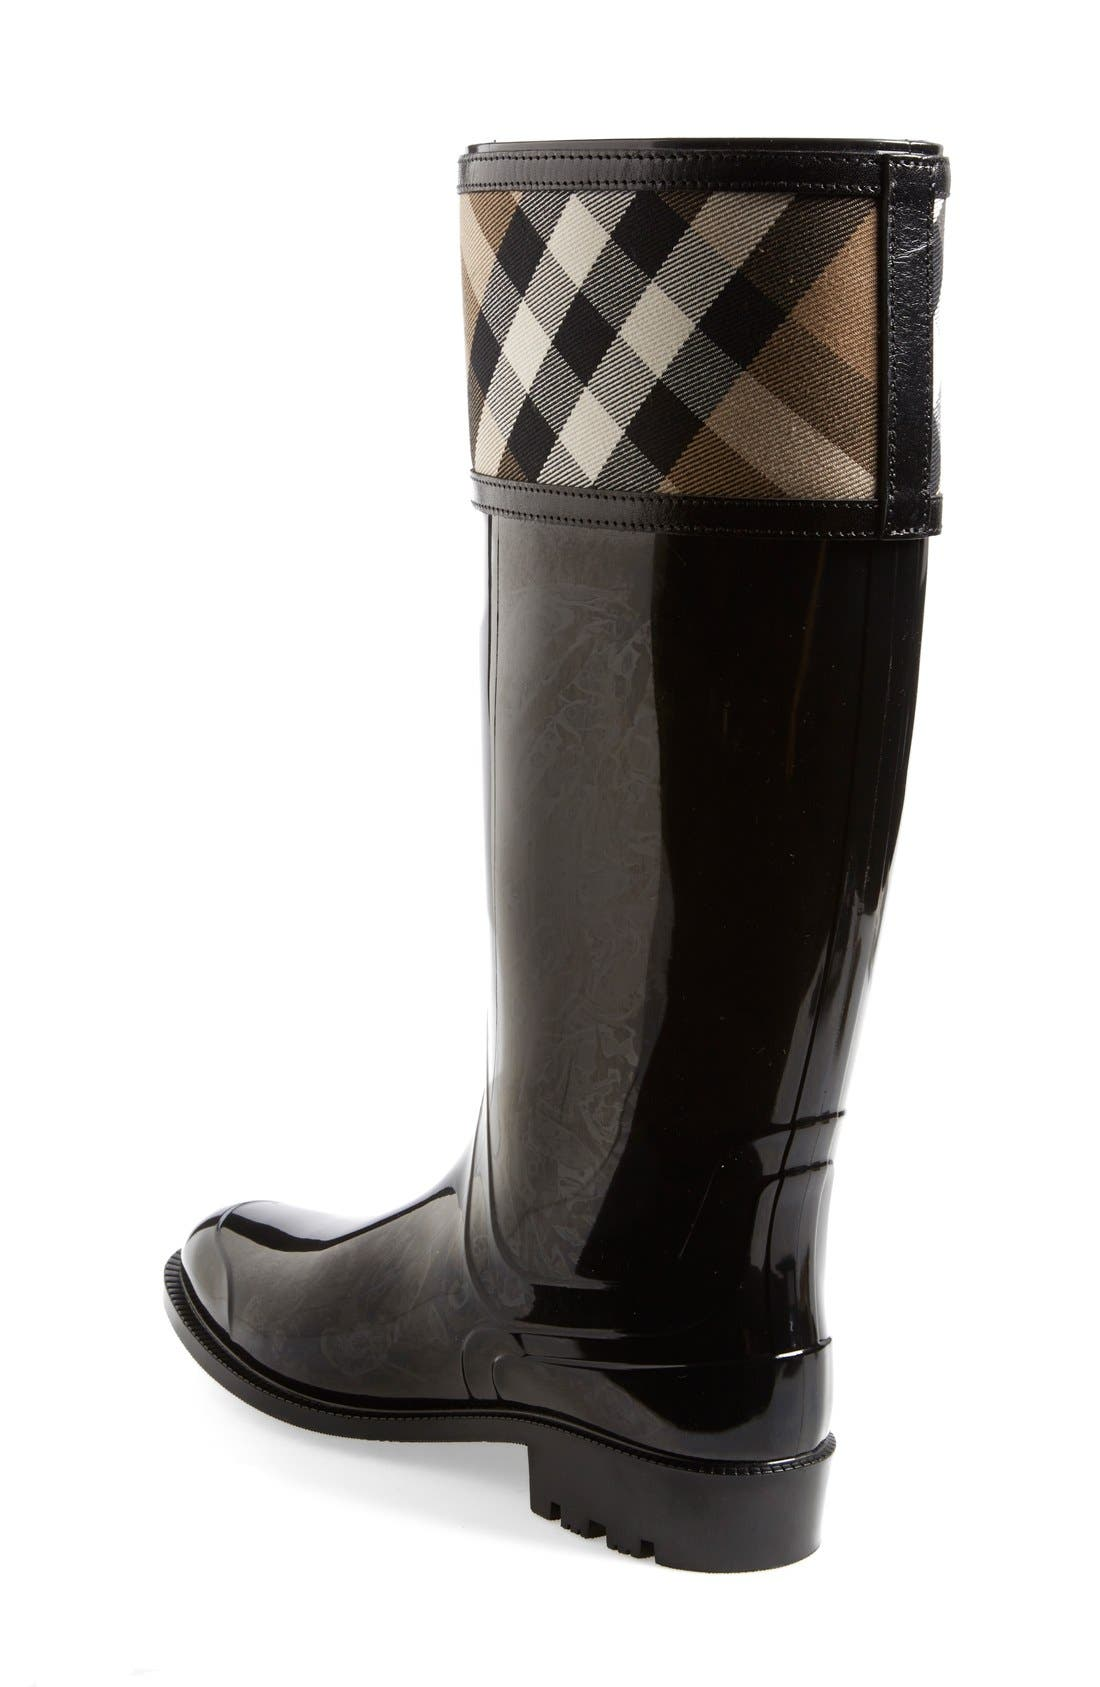 Crosshill Rain Boot,                             Alternate thumbnail 2, color,                             001